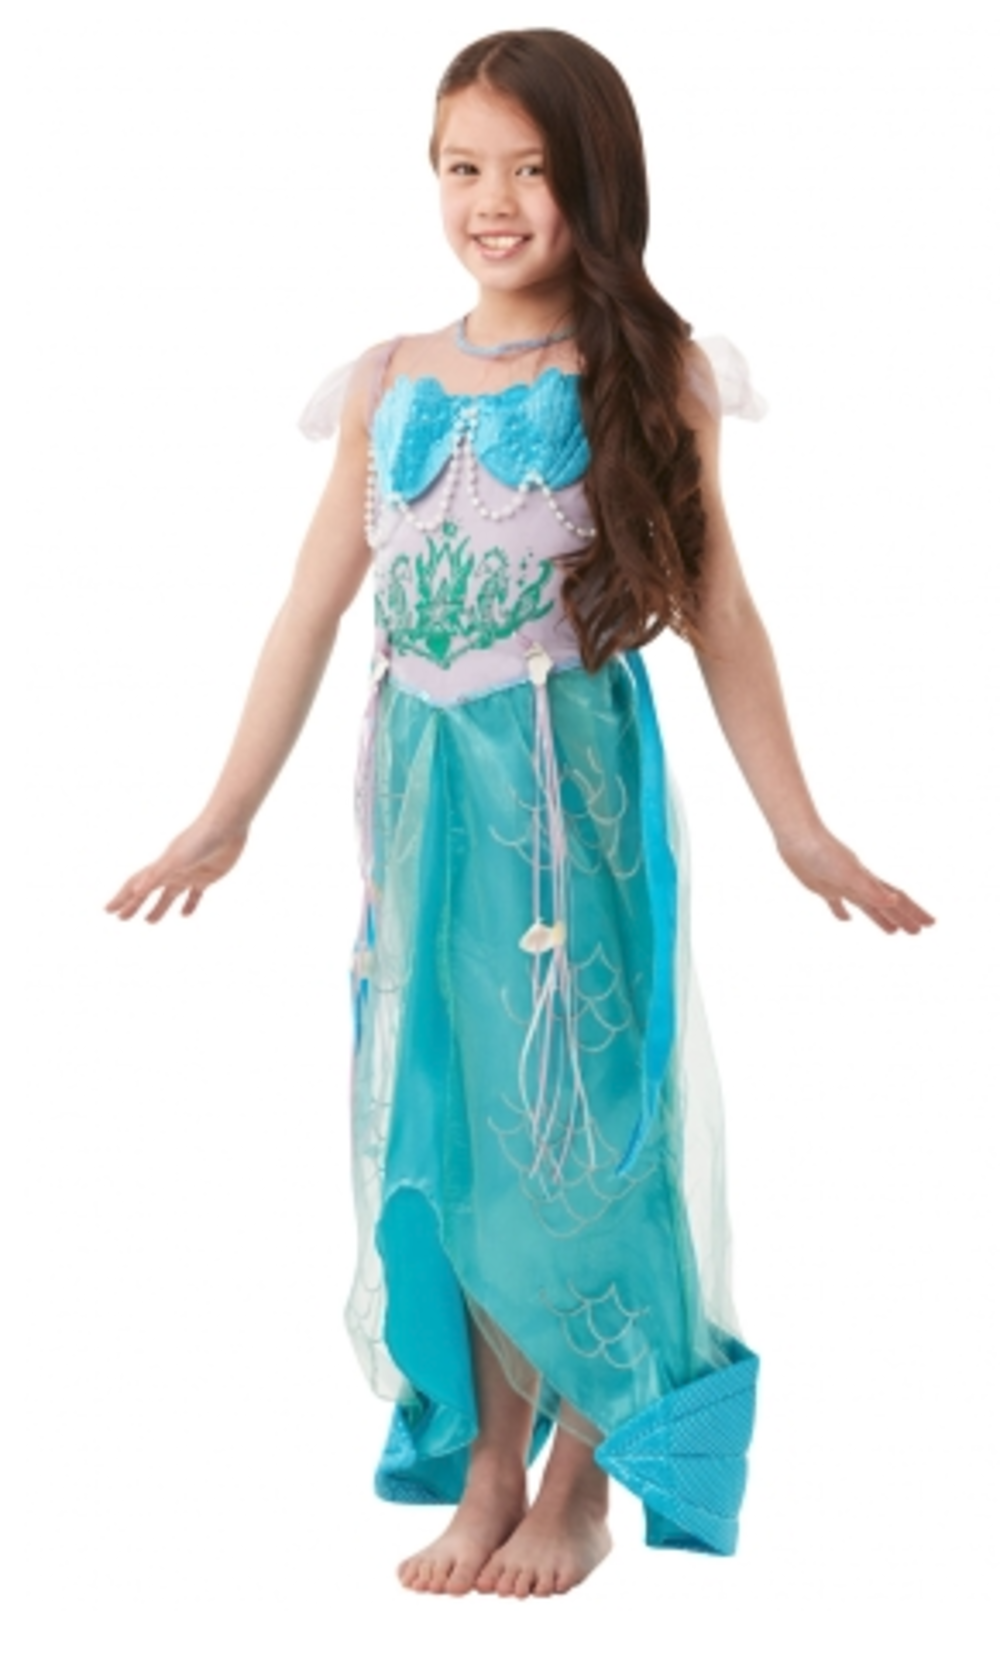 Deluxe Mermaid Princess Fancy Dress Costume